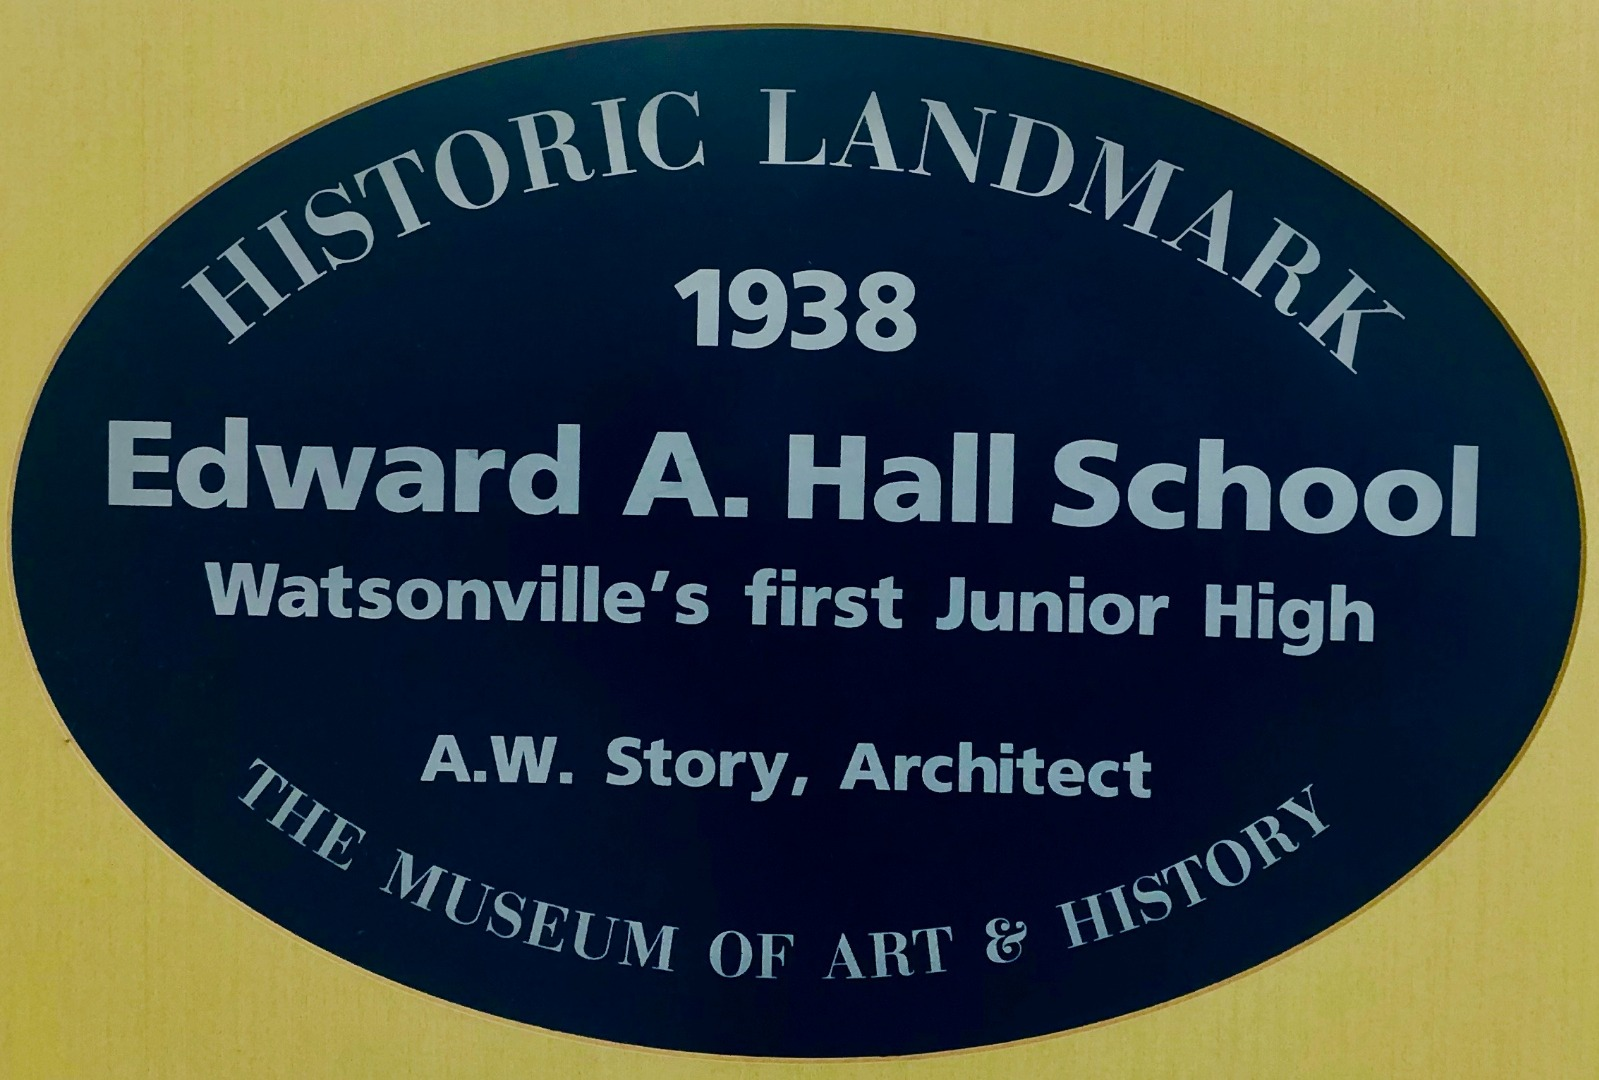 Historic Landmark, 1938 Edward A. Hall School